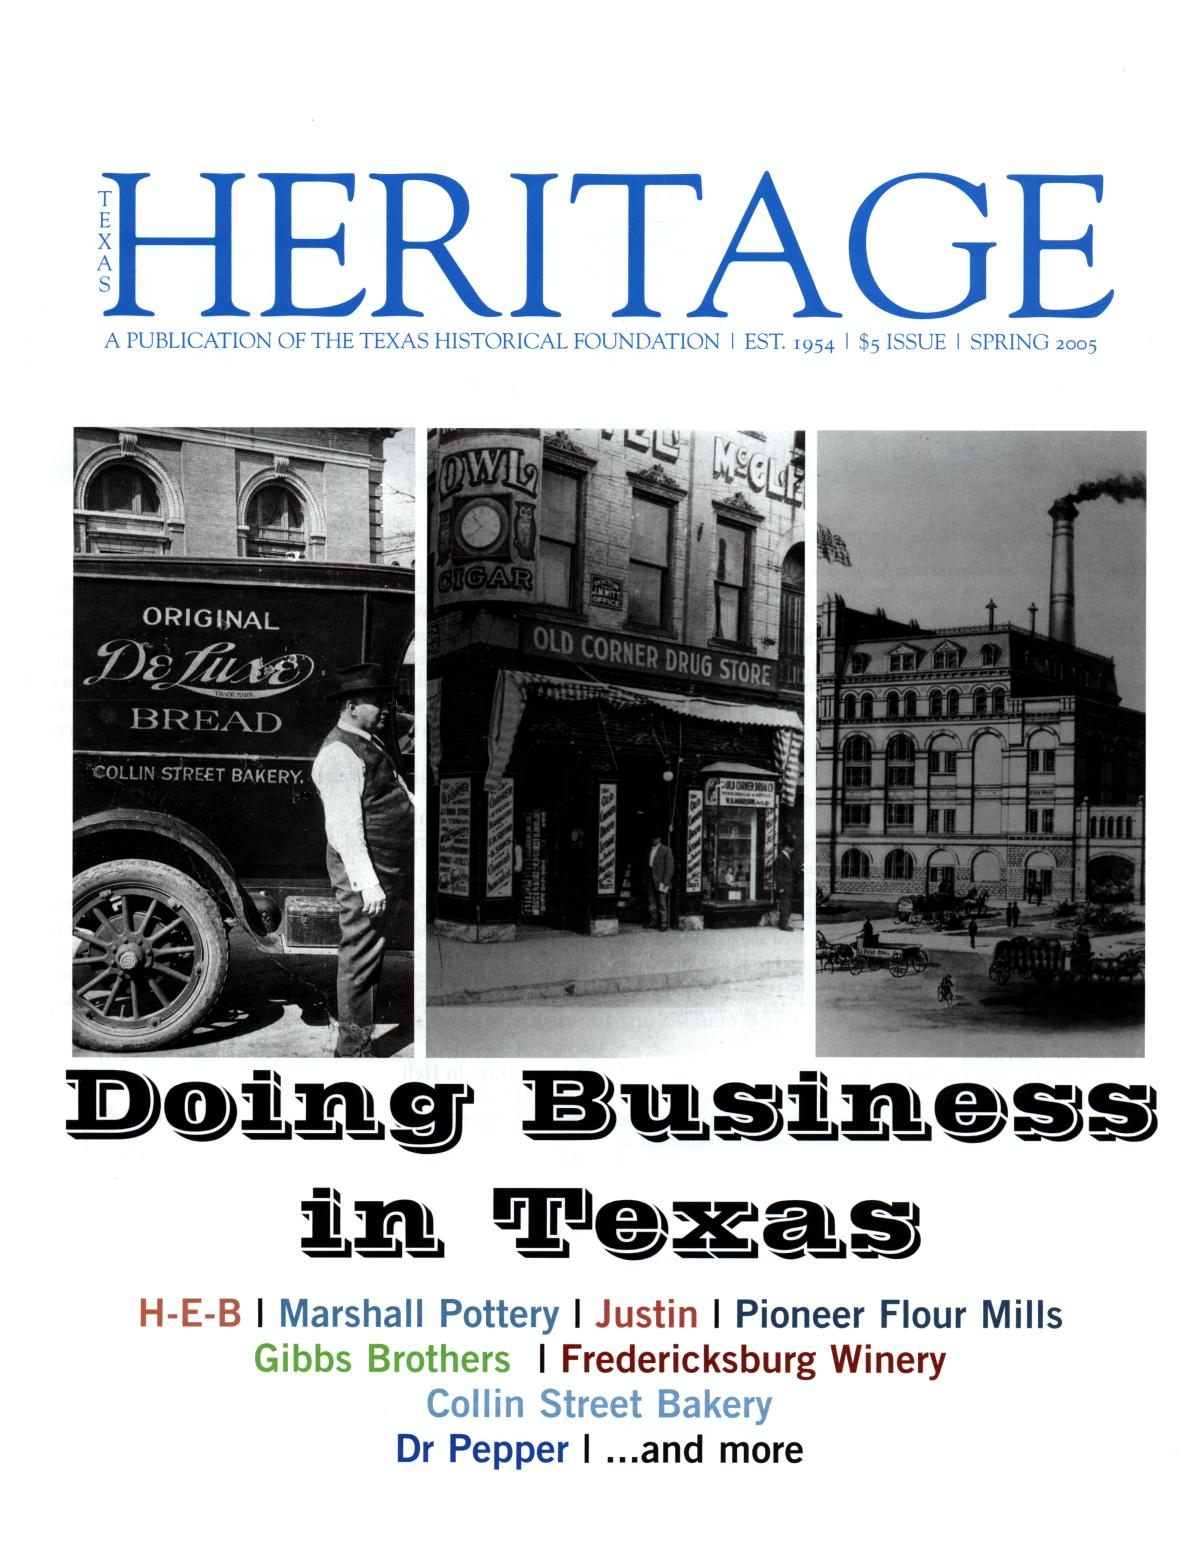 Heritage, Spring 2005                                                                                                      Front Cover